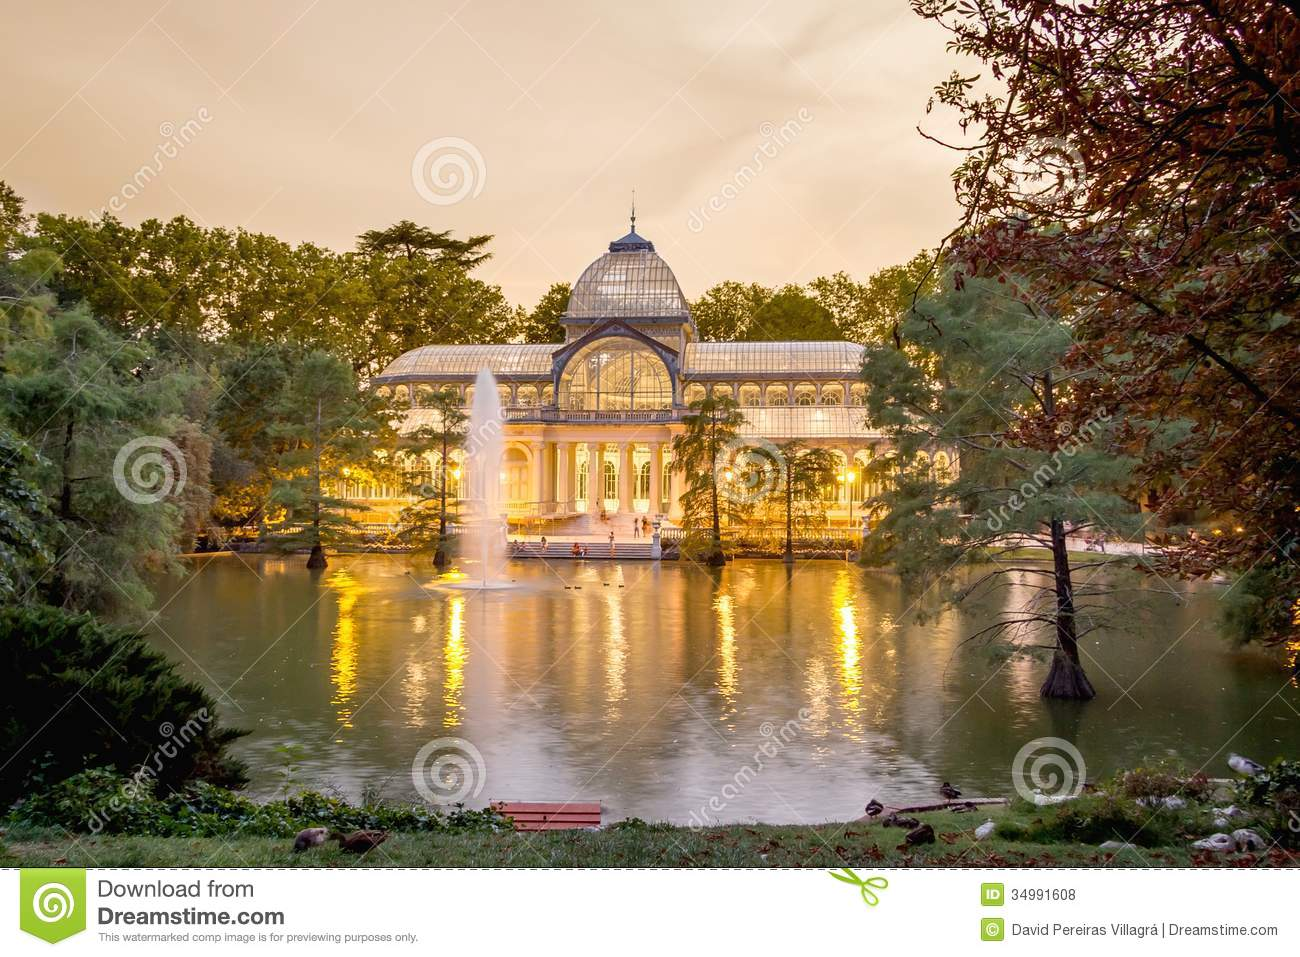 Crystal Palace In Buen Retiro Park, Madrid Royalty Free Stock Photos - Image: 34991608